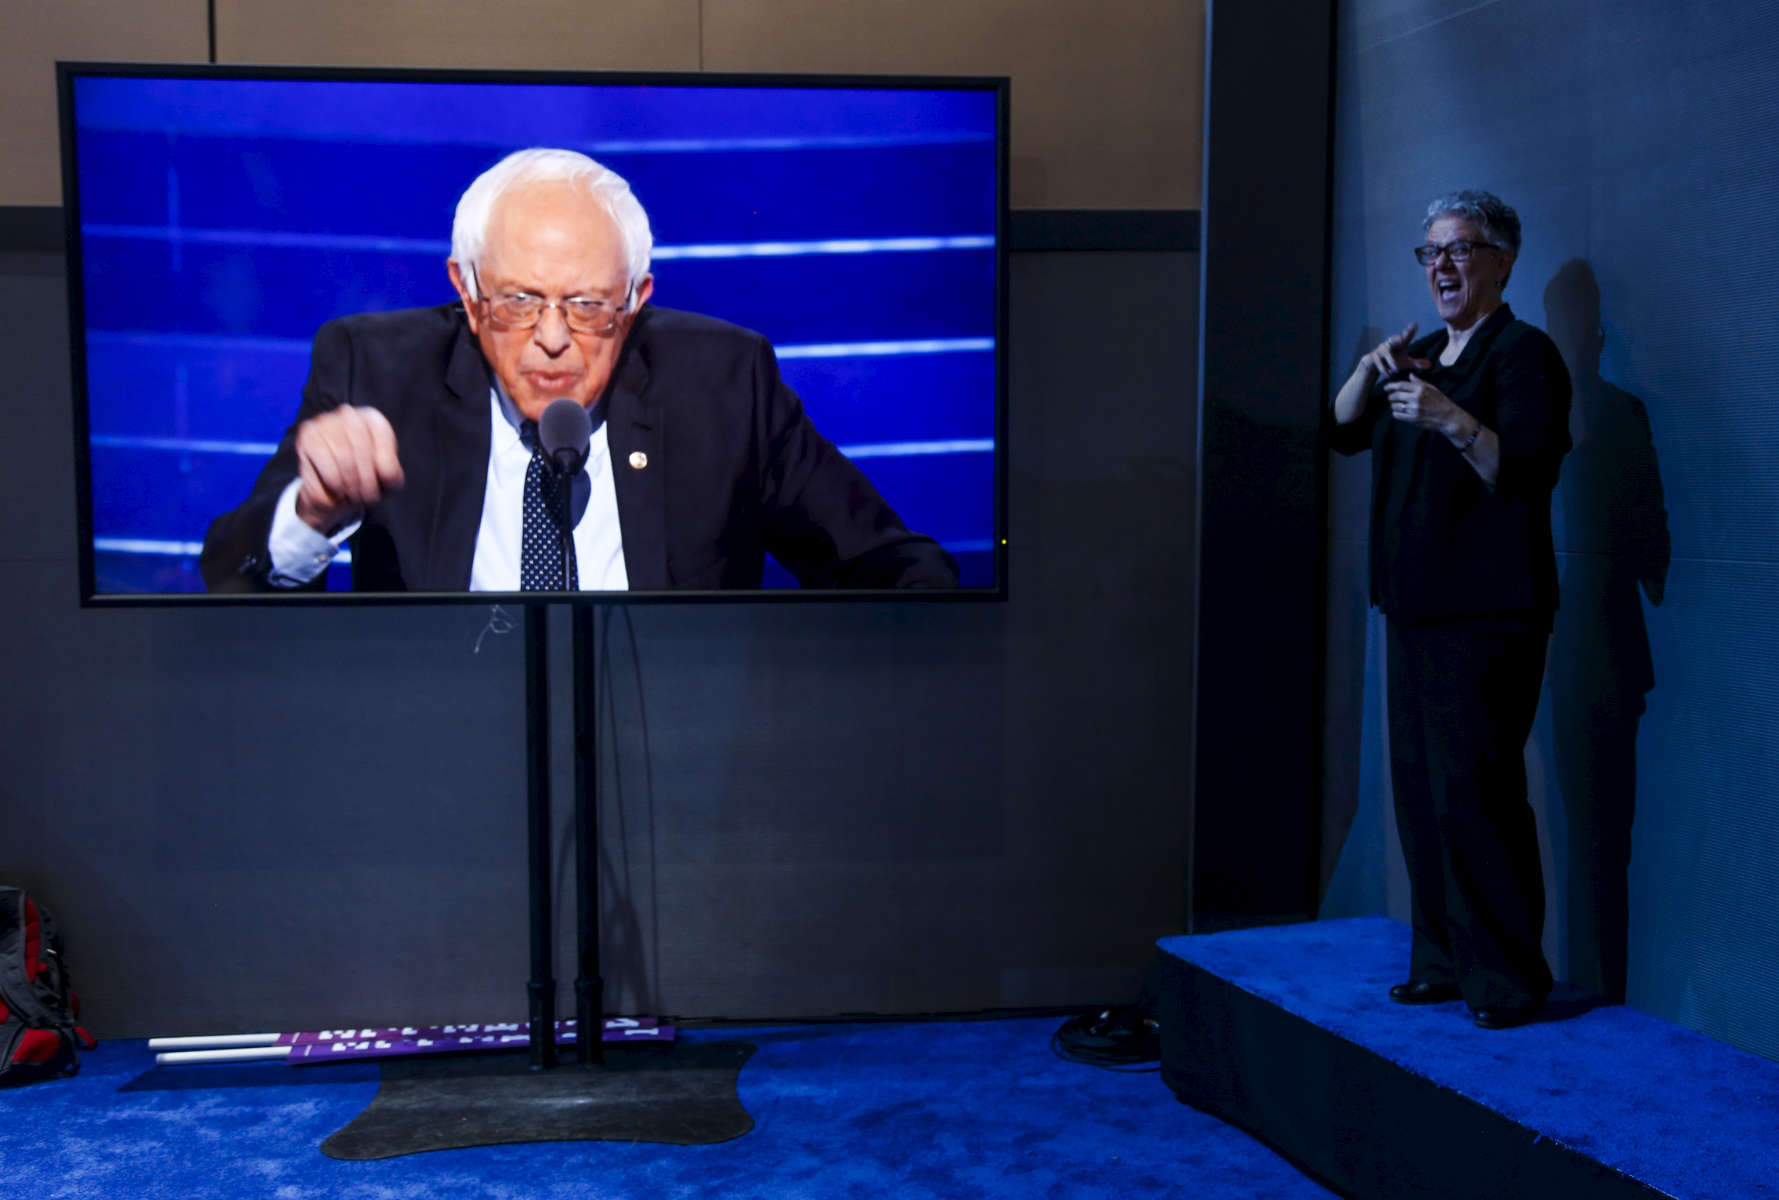 Senator Bernie Sanders (I-VT) address the delegates, seen on a TV screen, while woman translates the speech for non-hearing people, on the first day of the Democratic National Convention.